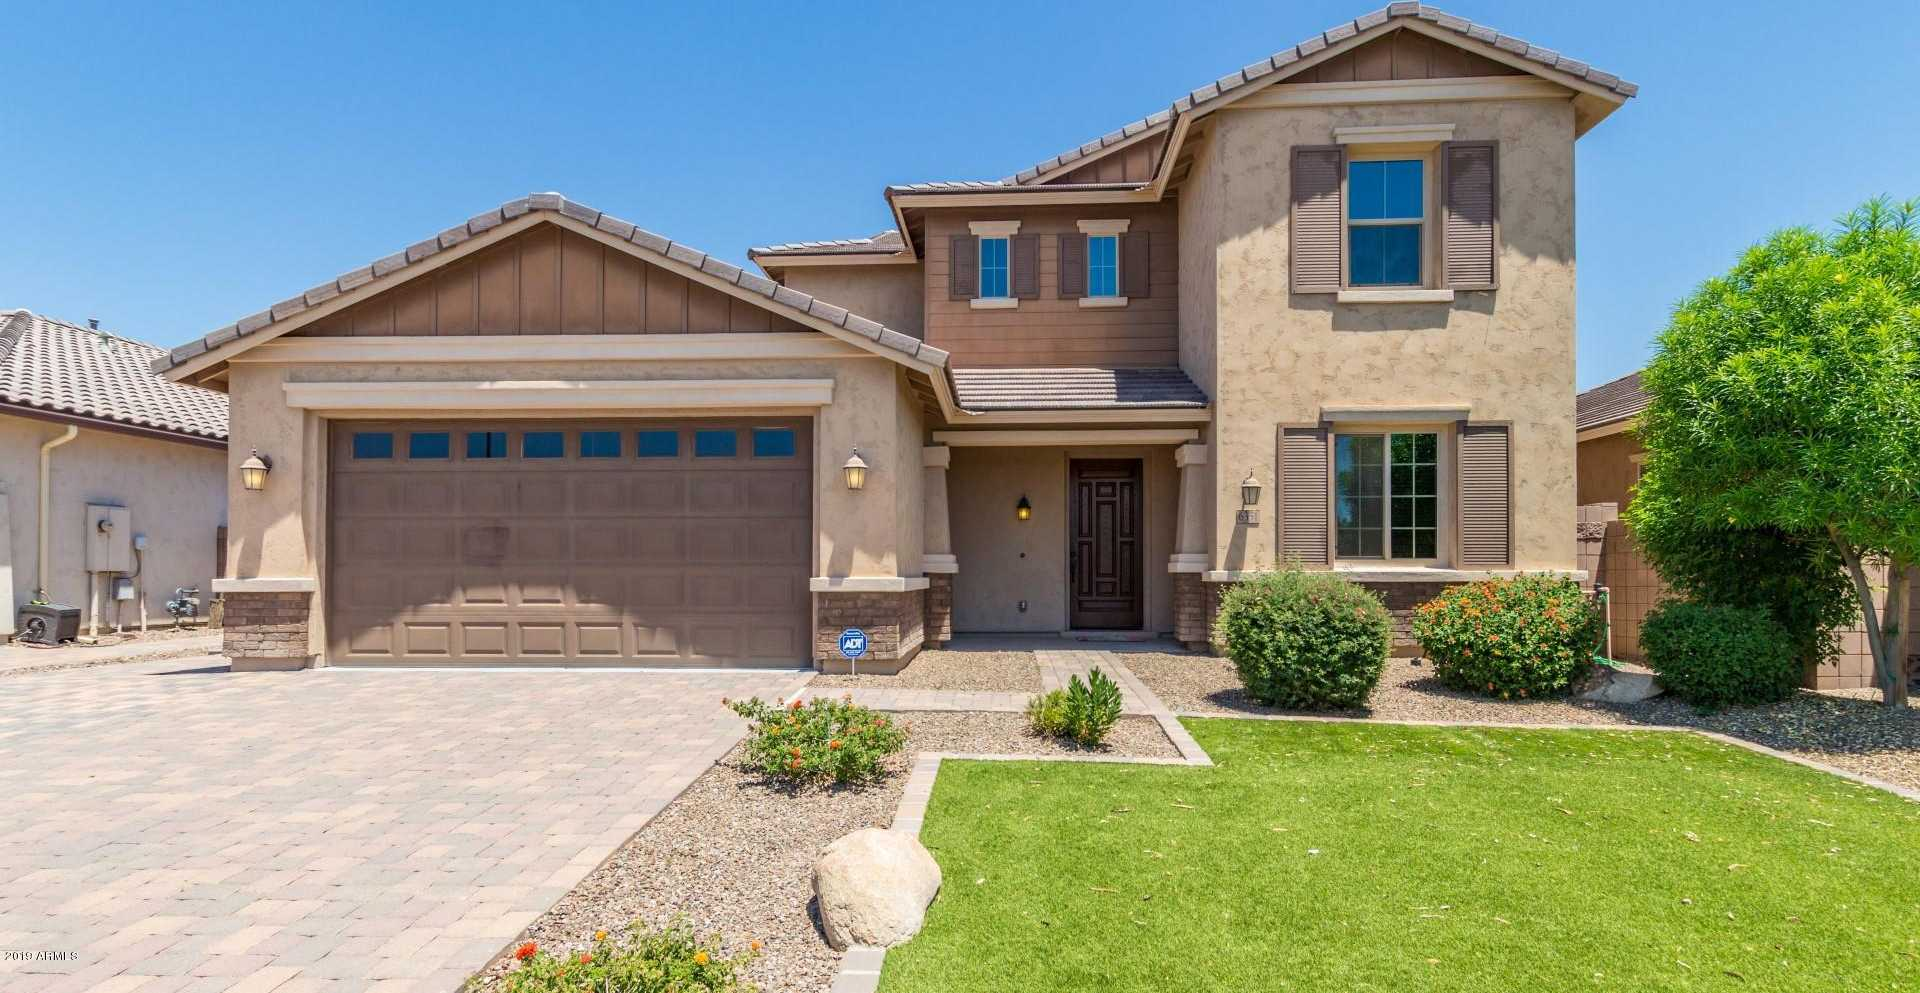 $500,000 - 5Br/3Ba - Home for Sale in Autumn Park, Chandler